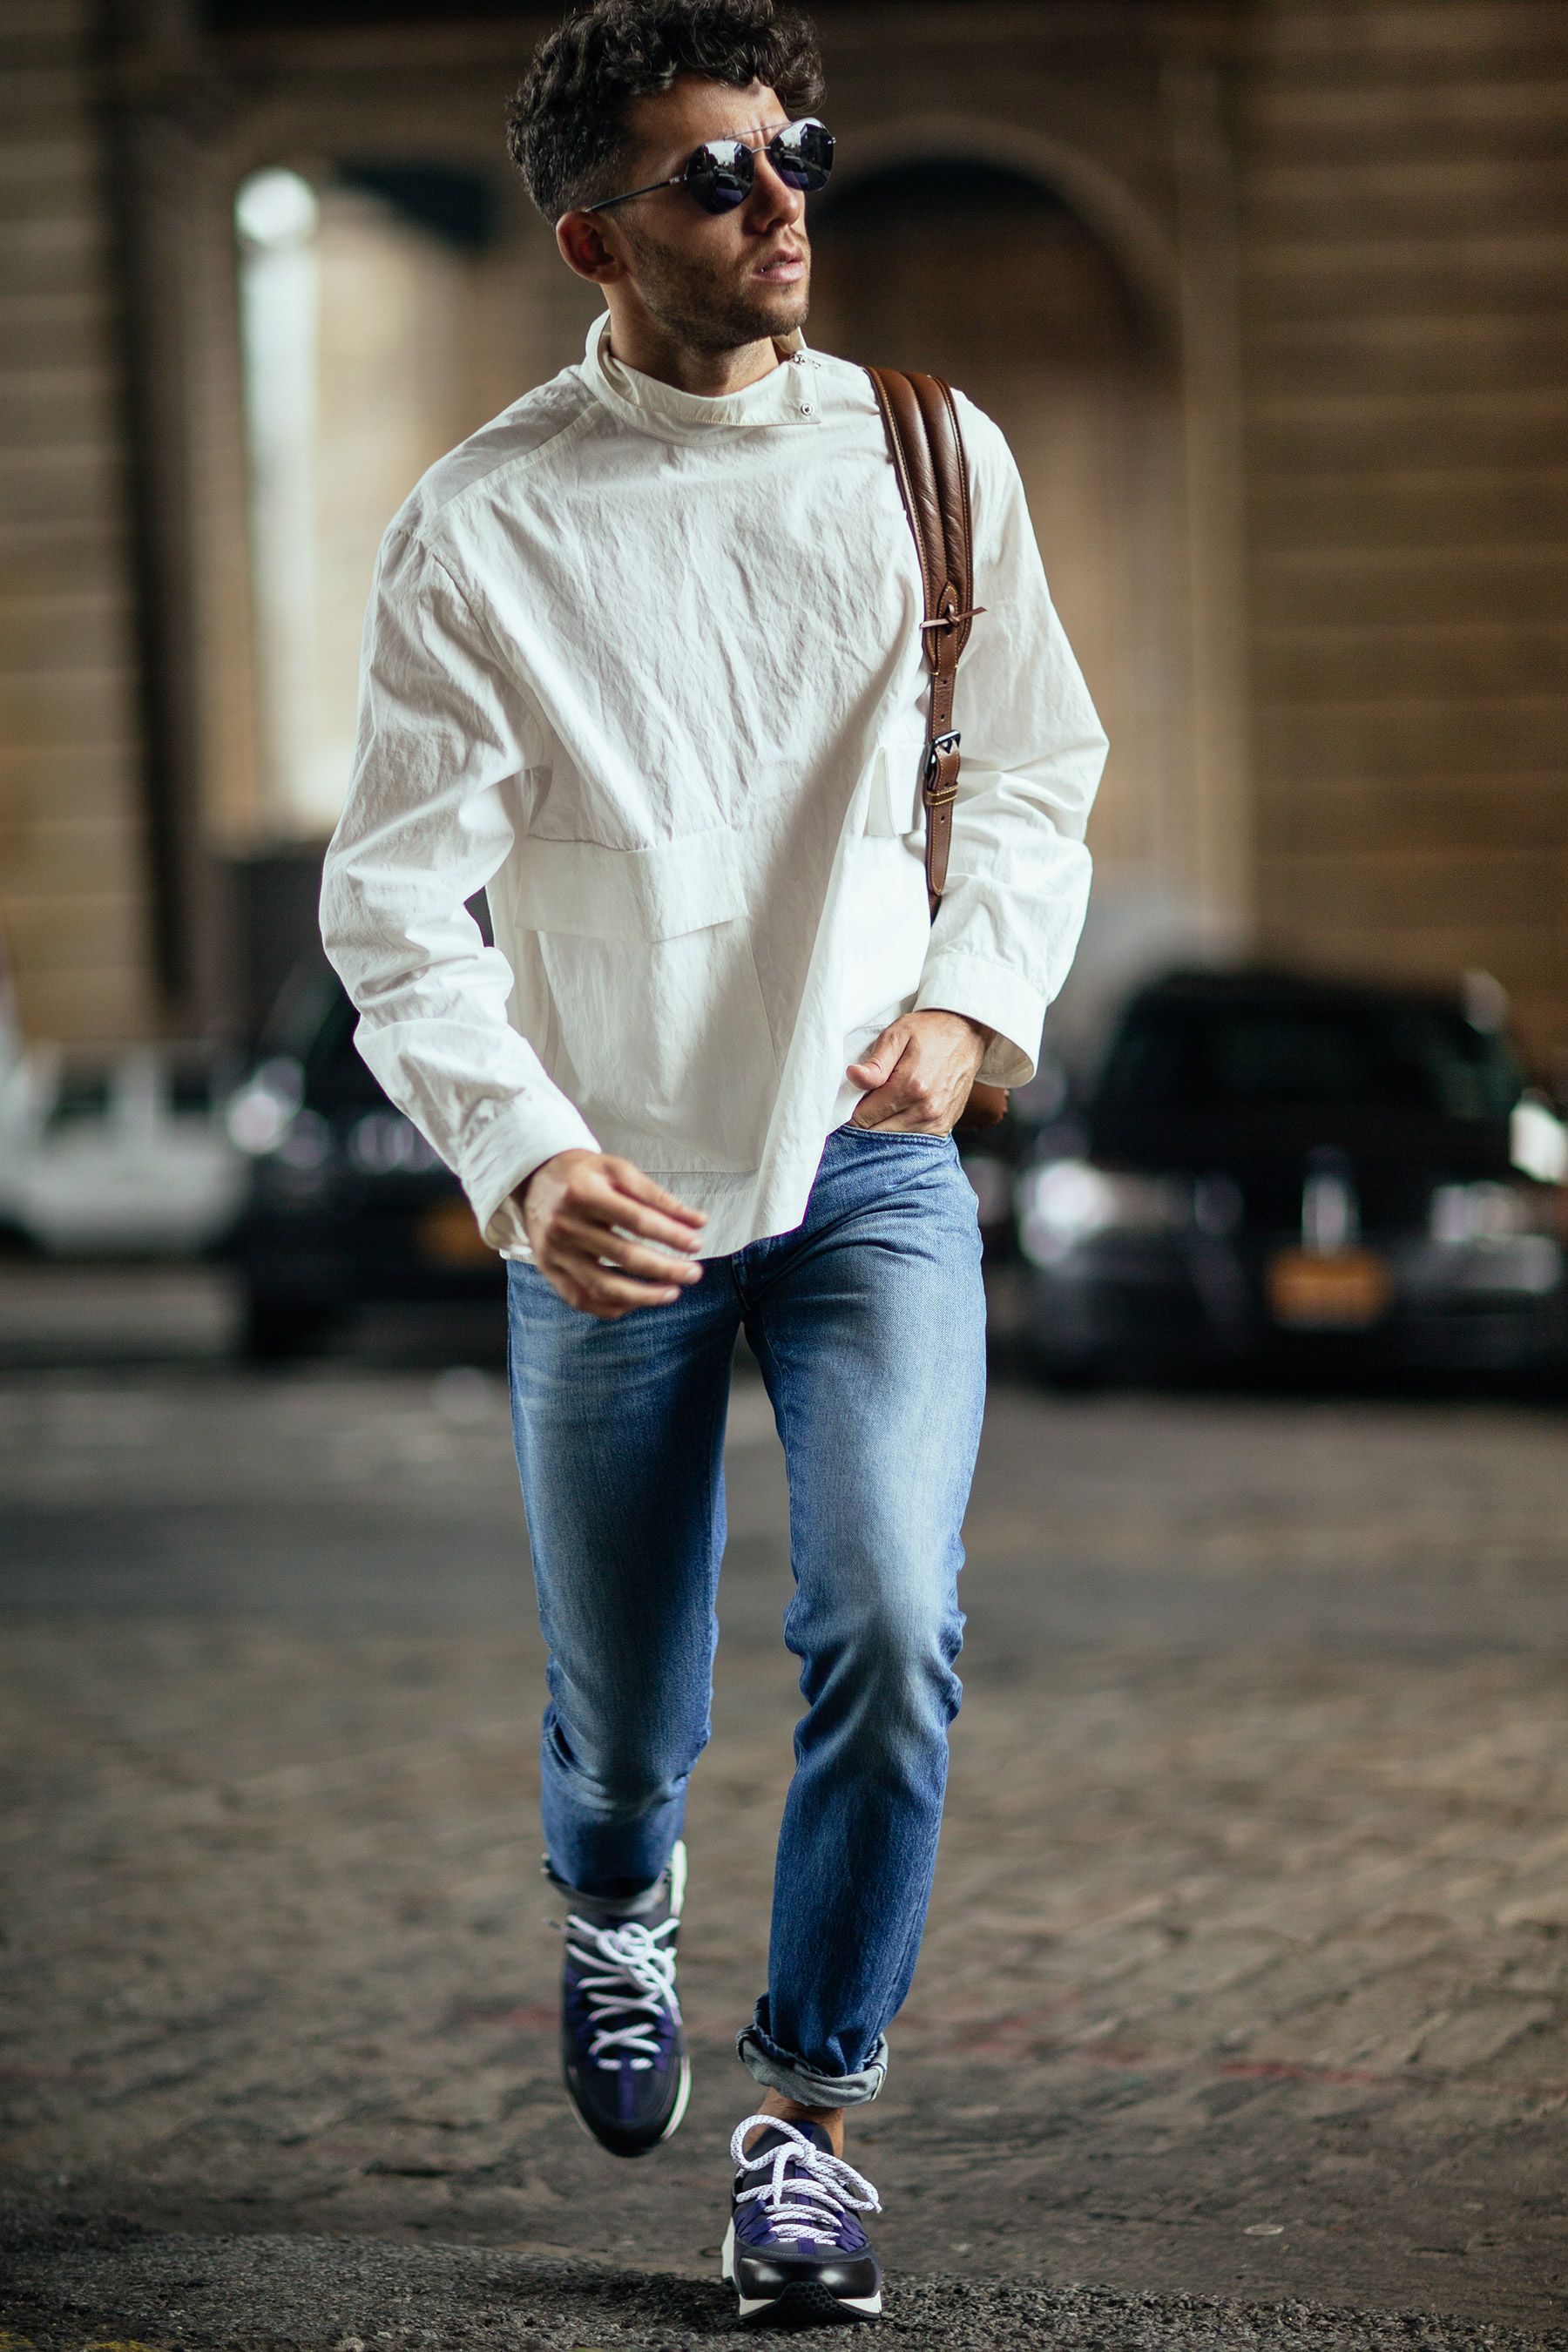 Men's Casual Streetwear Look | Jeans and White Top | New York Street Style | Men's Fashion Blogger